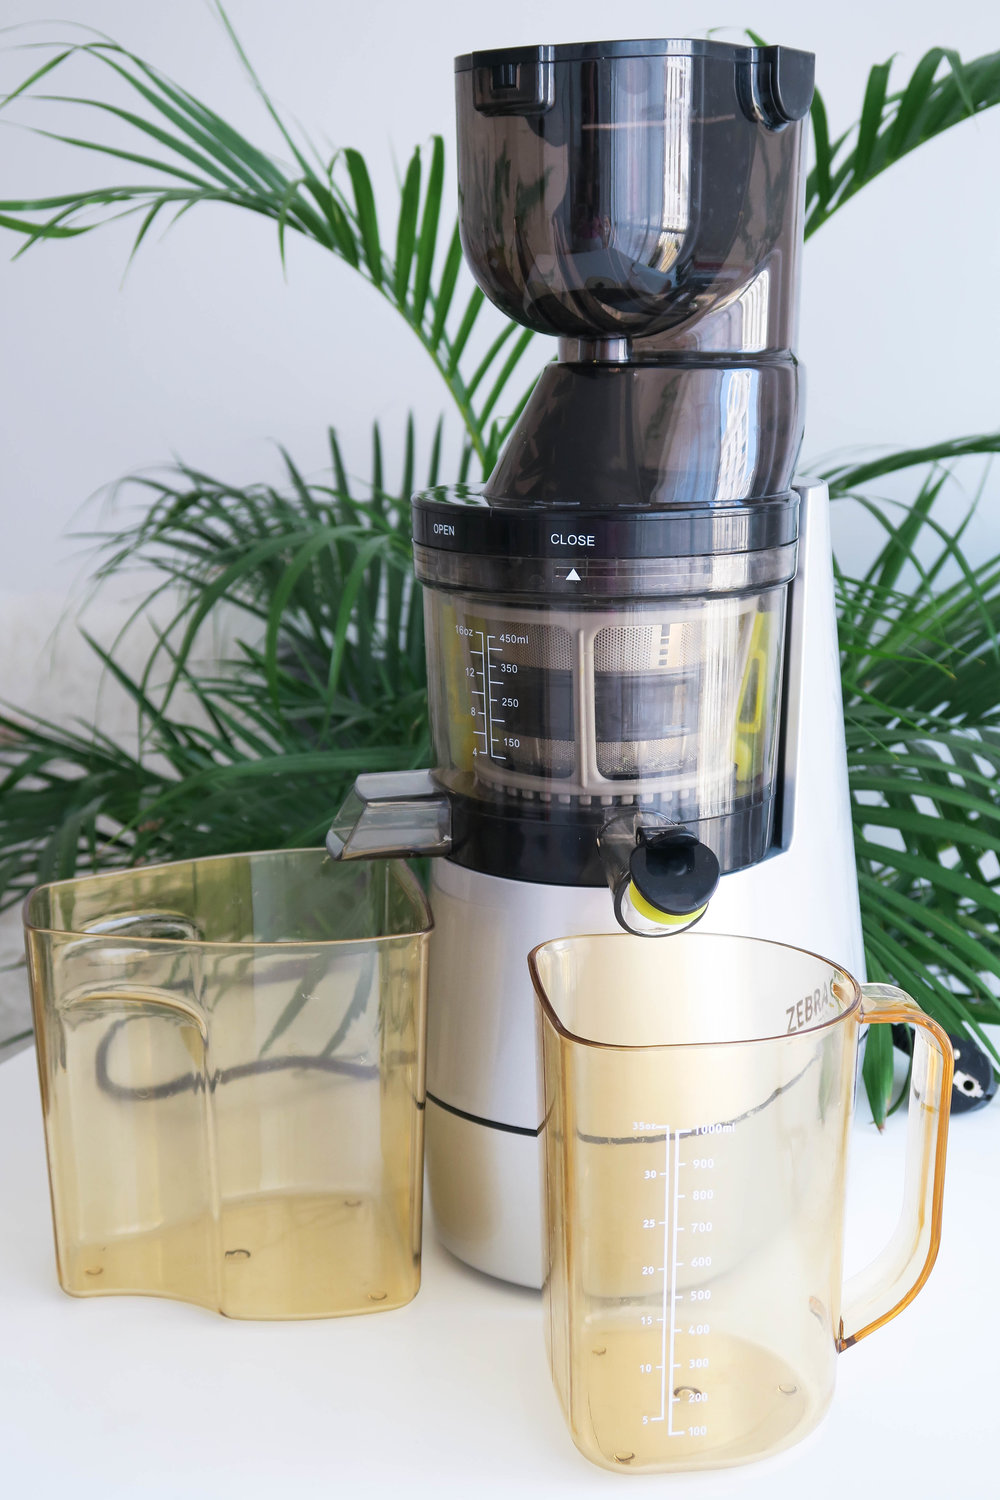 Zebra ByZoo juicer review